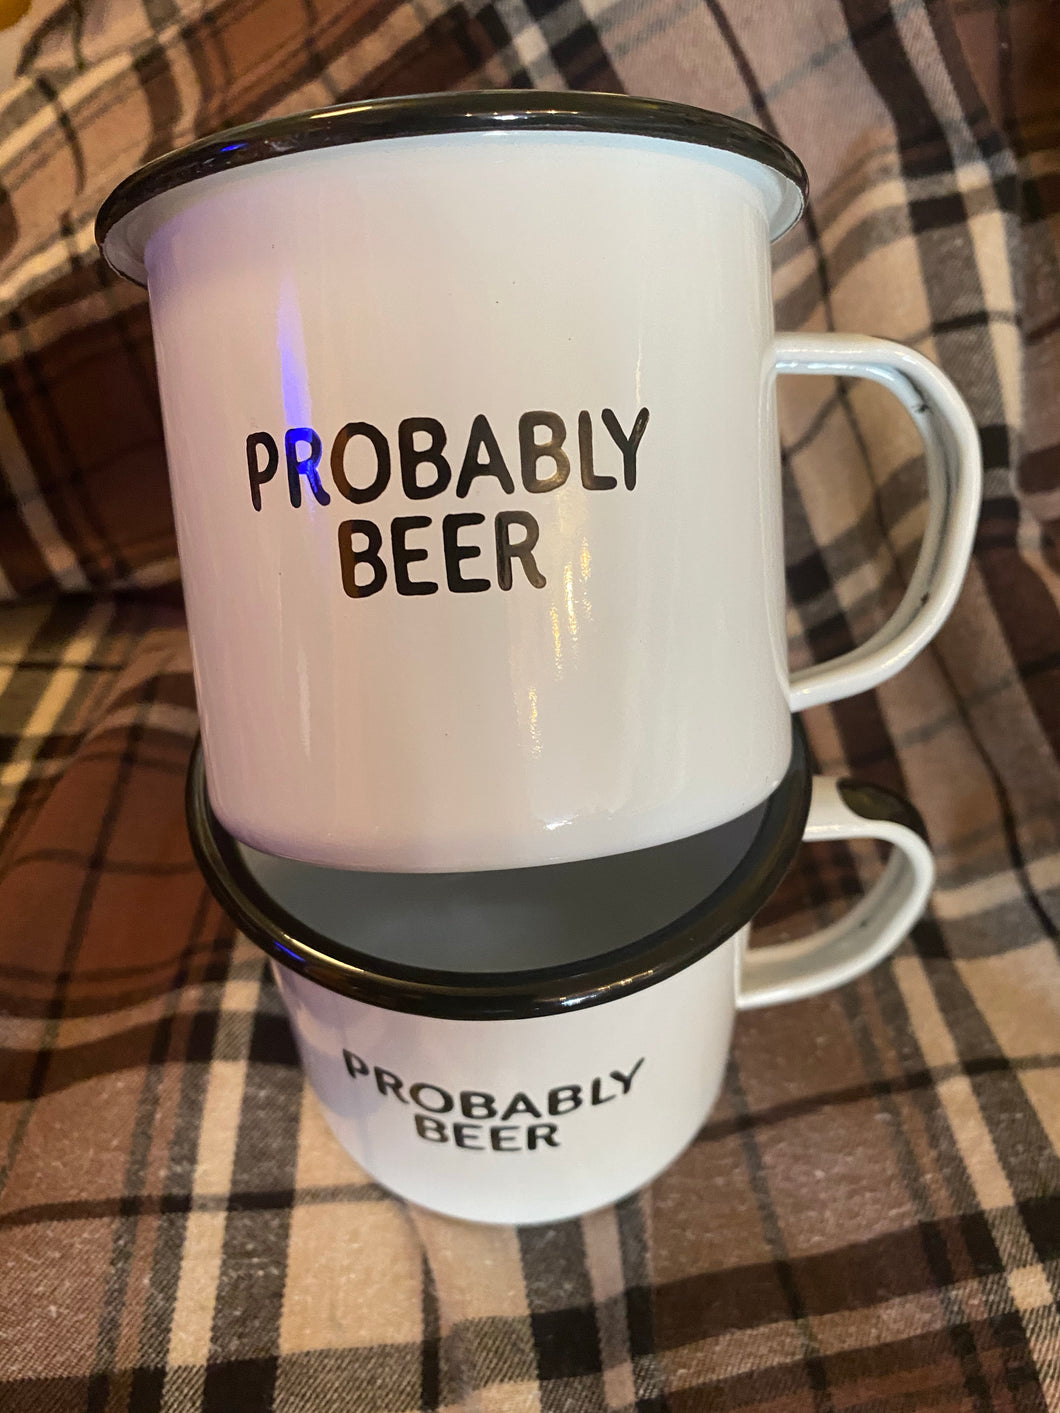 Probably Beer Camp Mug Swag Brewery